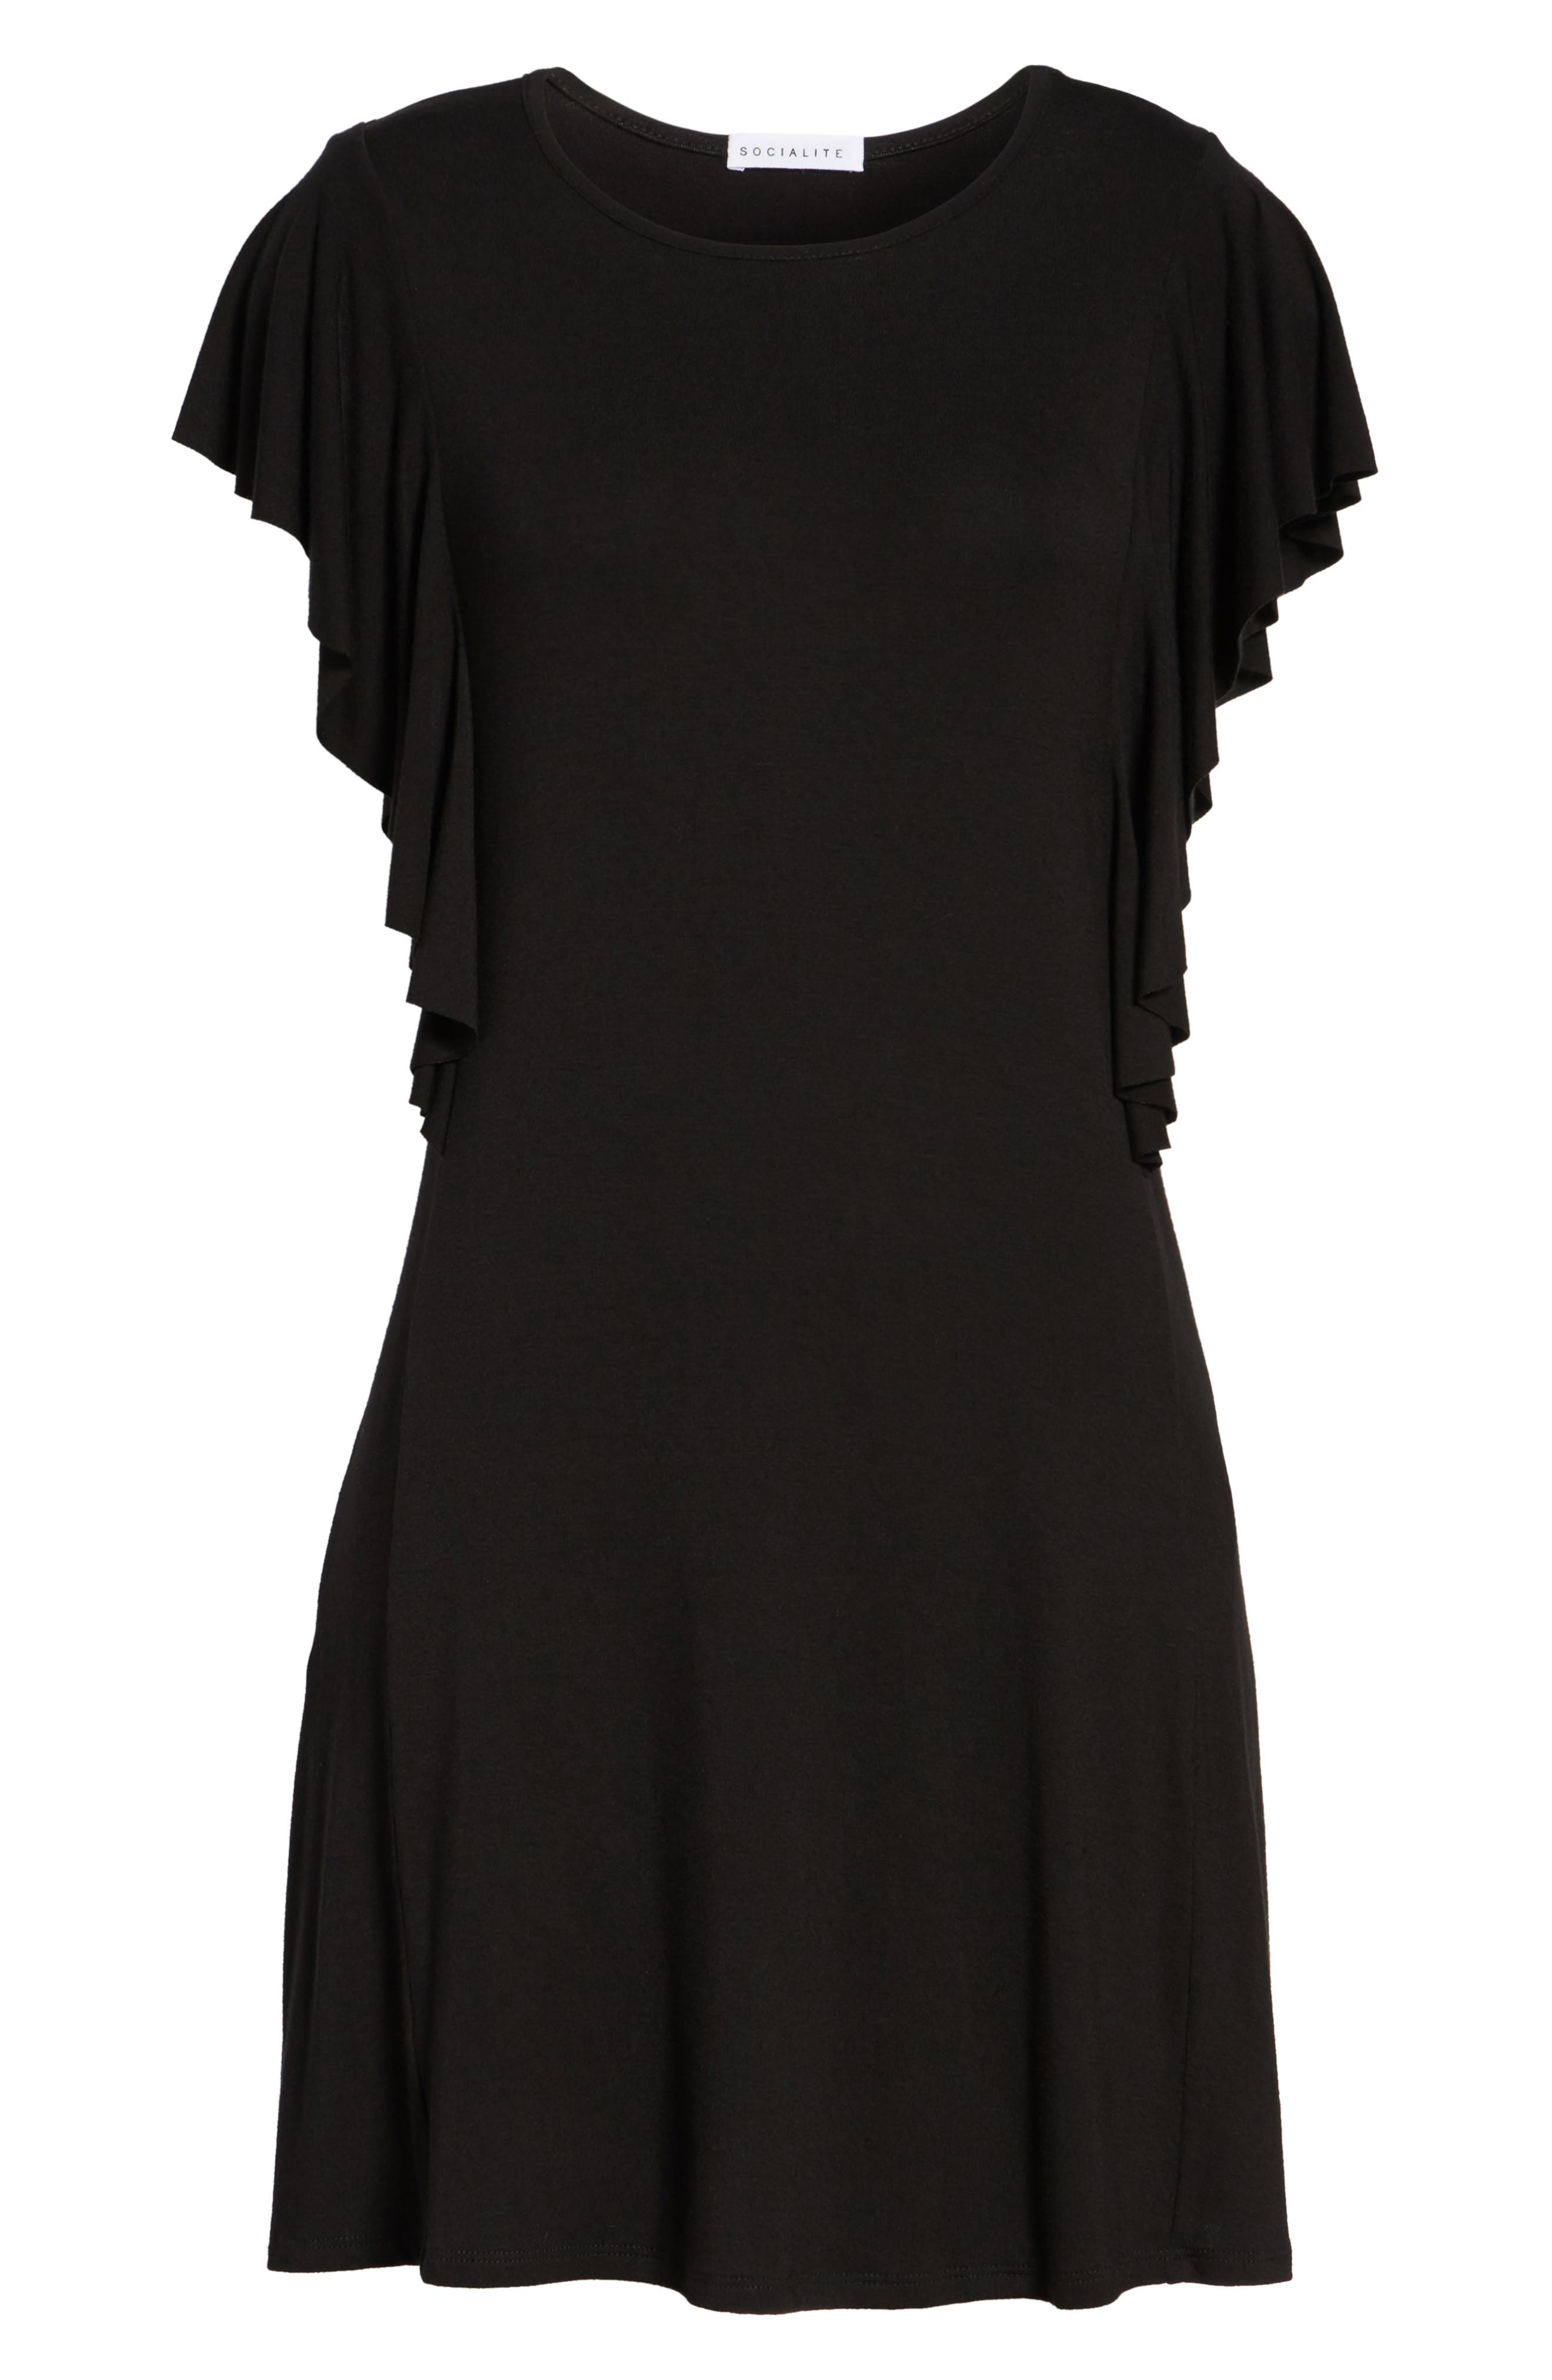 SOCIALITE, Ruffle Sleeve T-Shirt Dress, Alternate thumbnail 6, color, 001